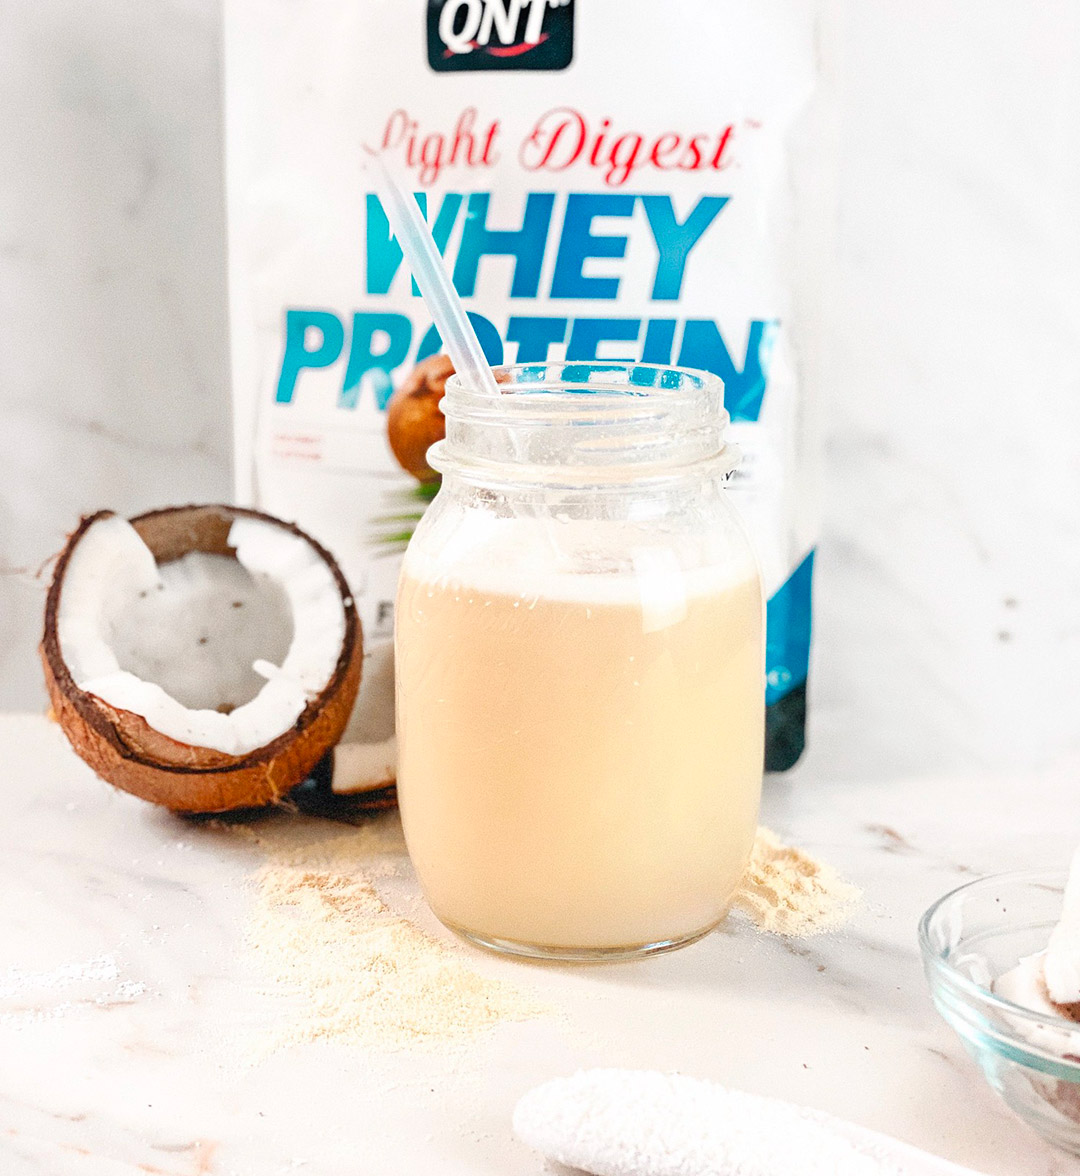 Light Digest Whey Protein Coconut